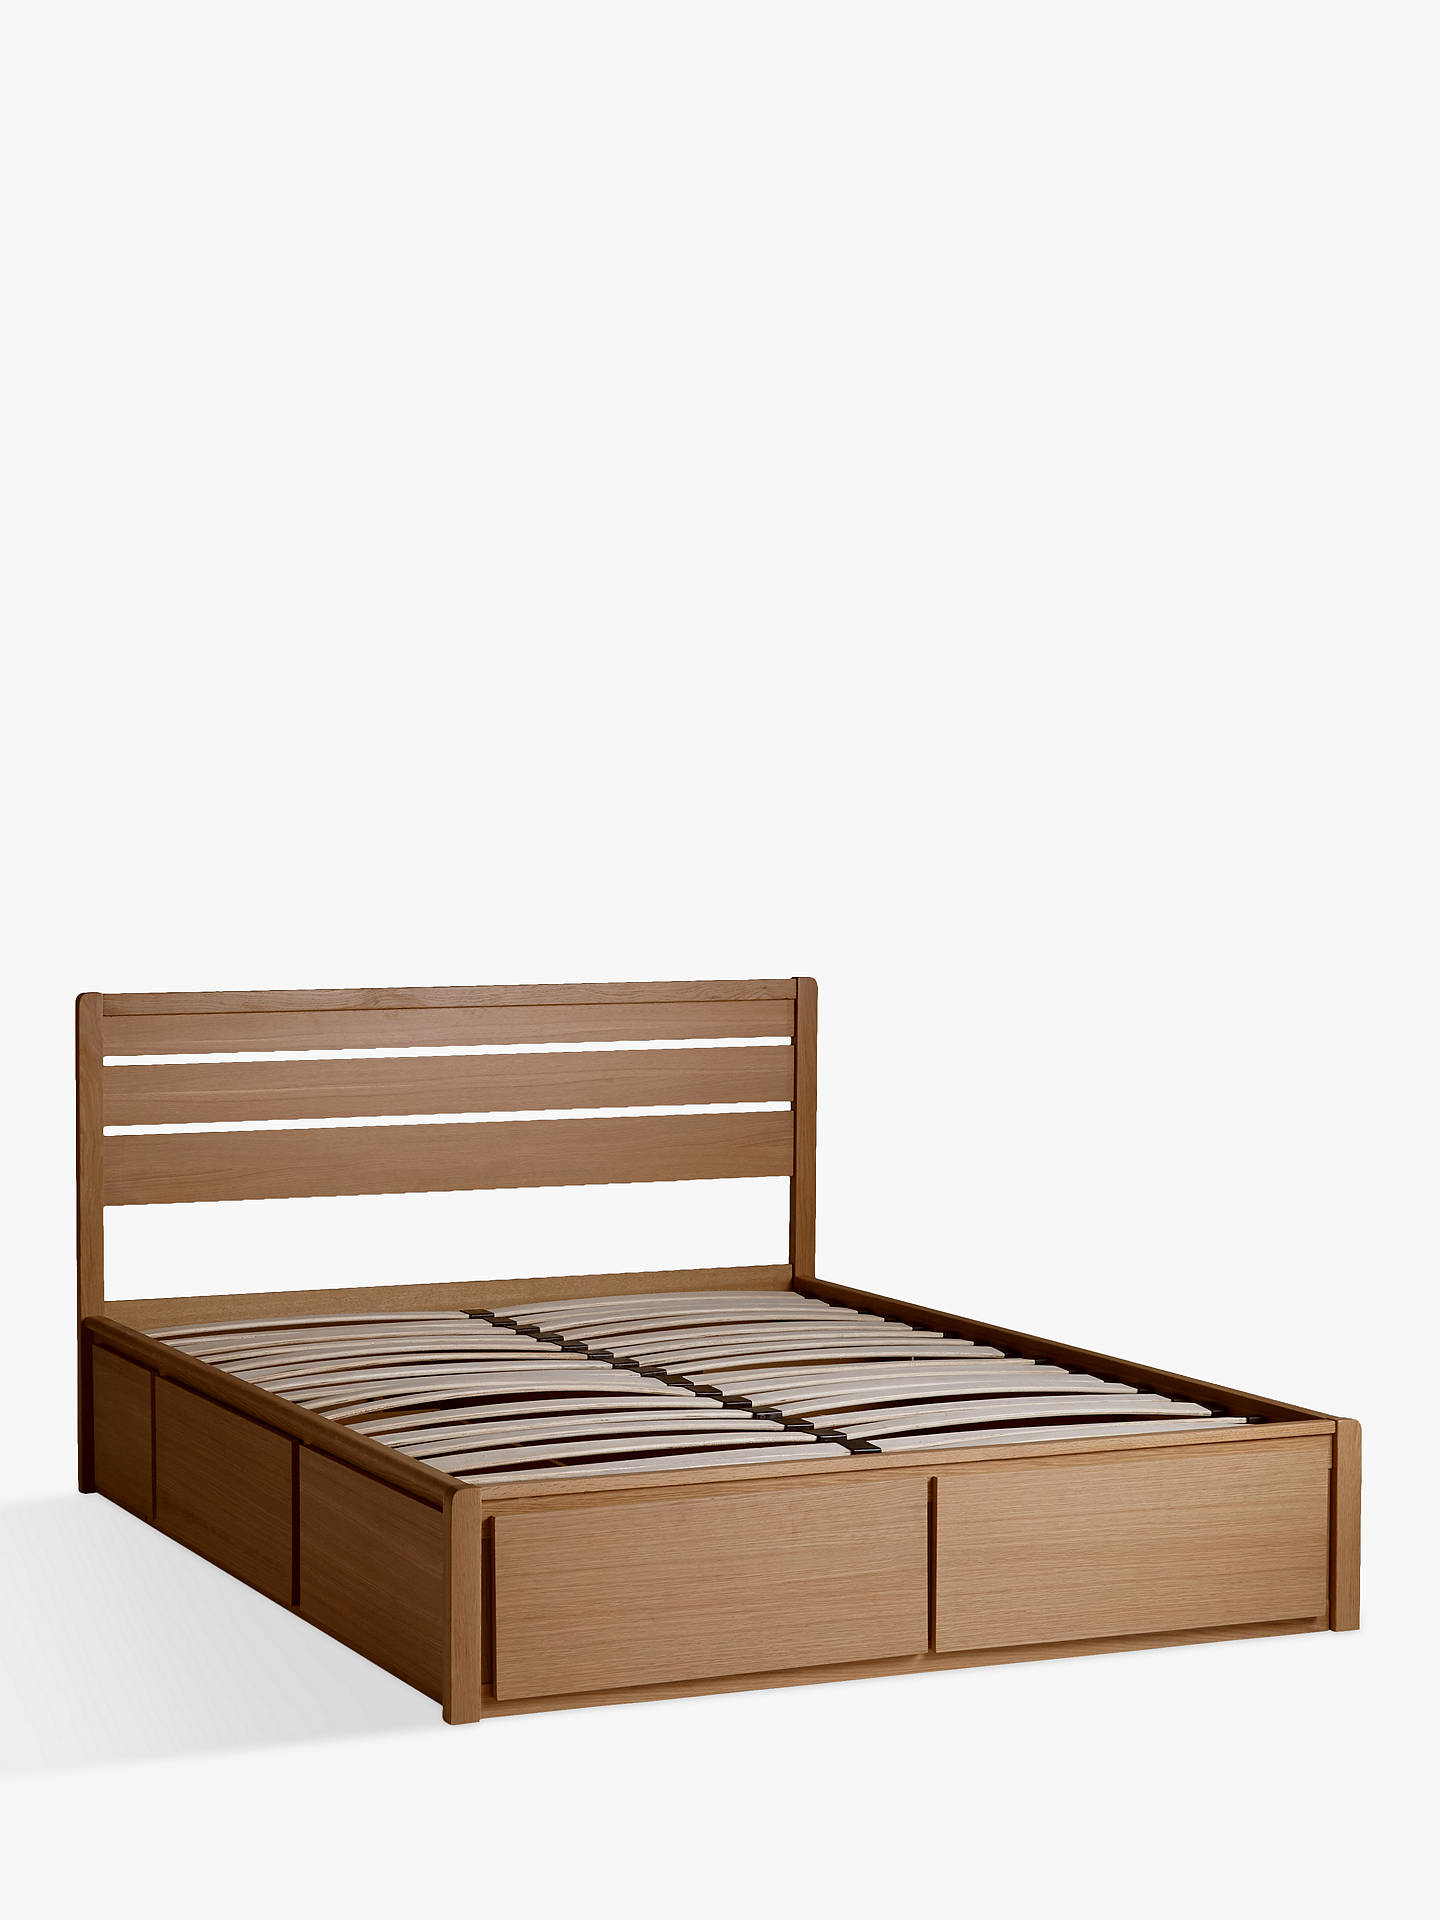 BuyJohn Lewis & Partners Montreal Storage Bed, Double, Oak Online at johnlewis.com